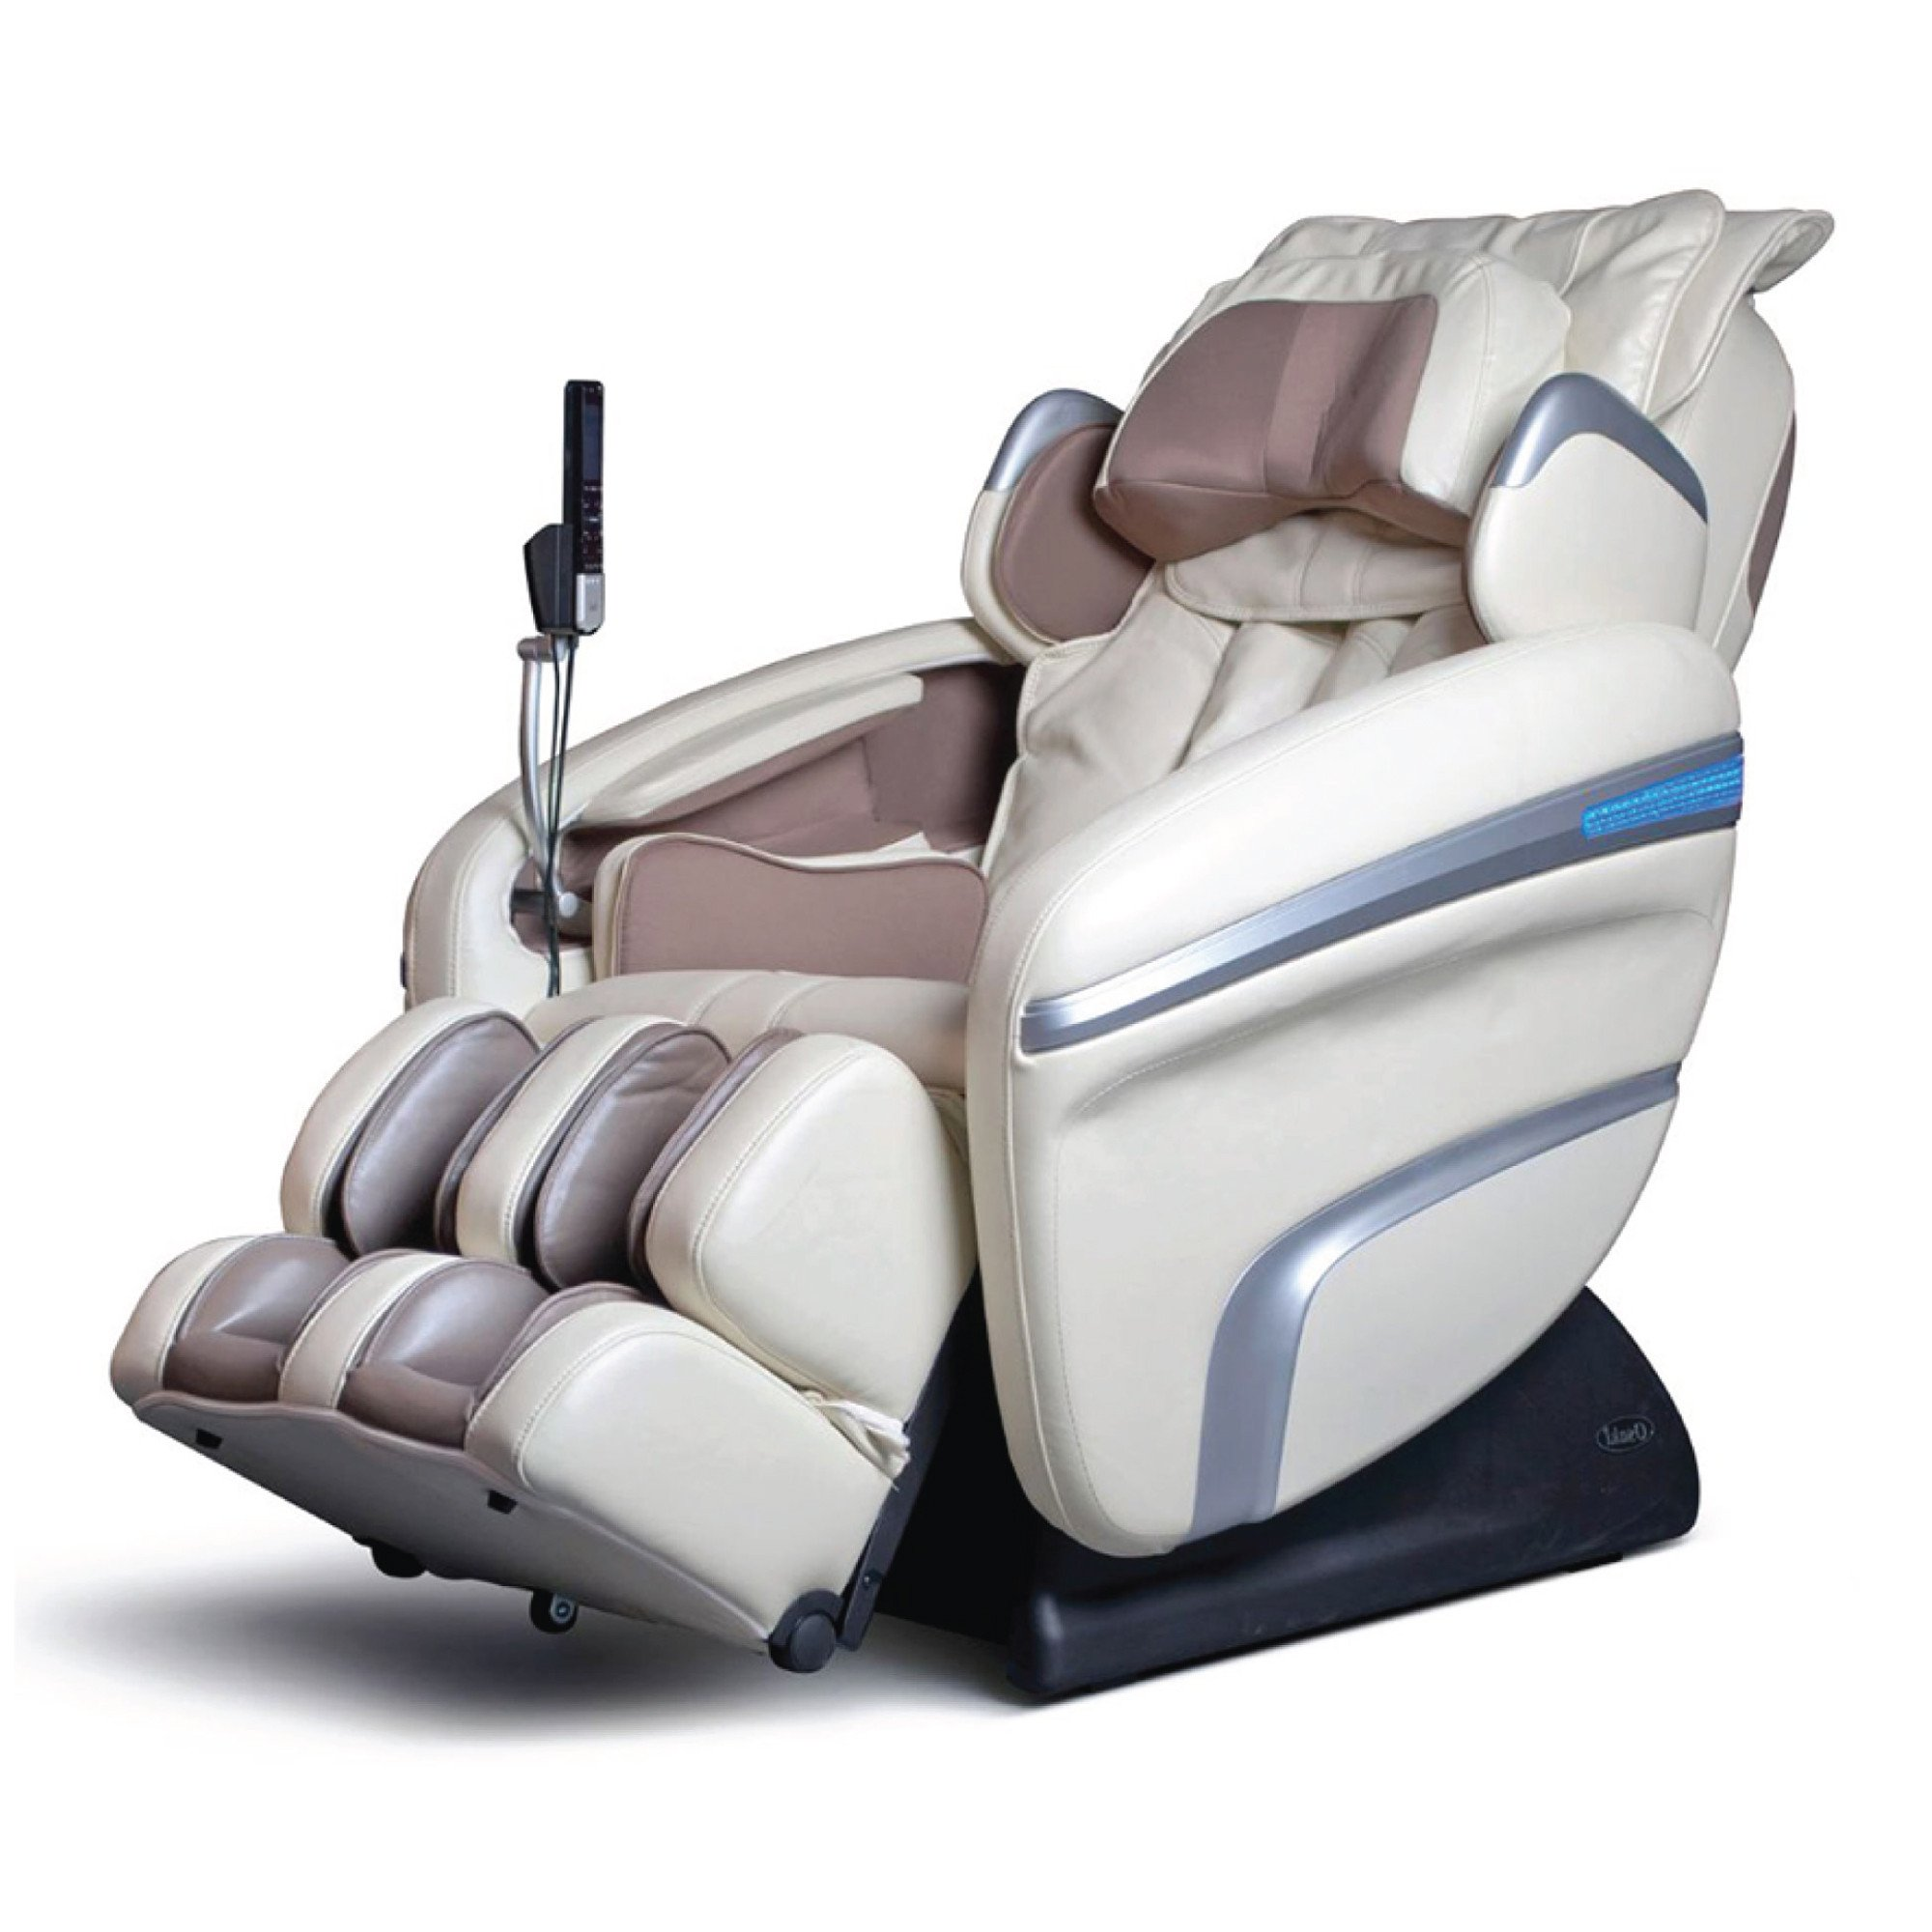 Osaki 7200H Massage Chair - Cream - Front Angle View